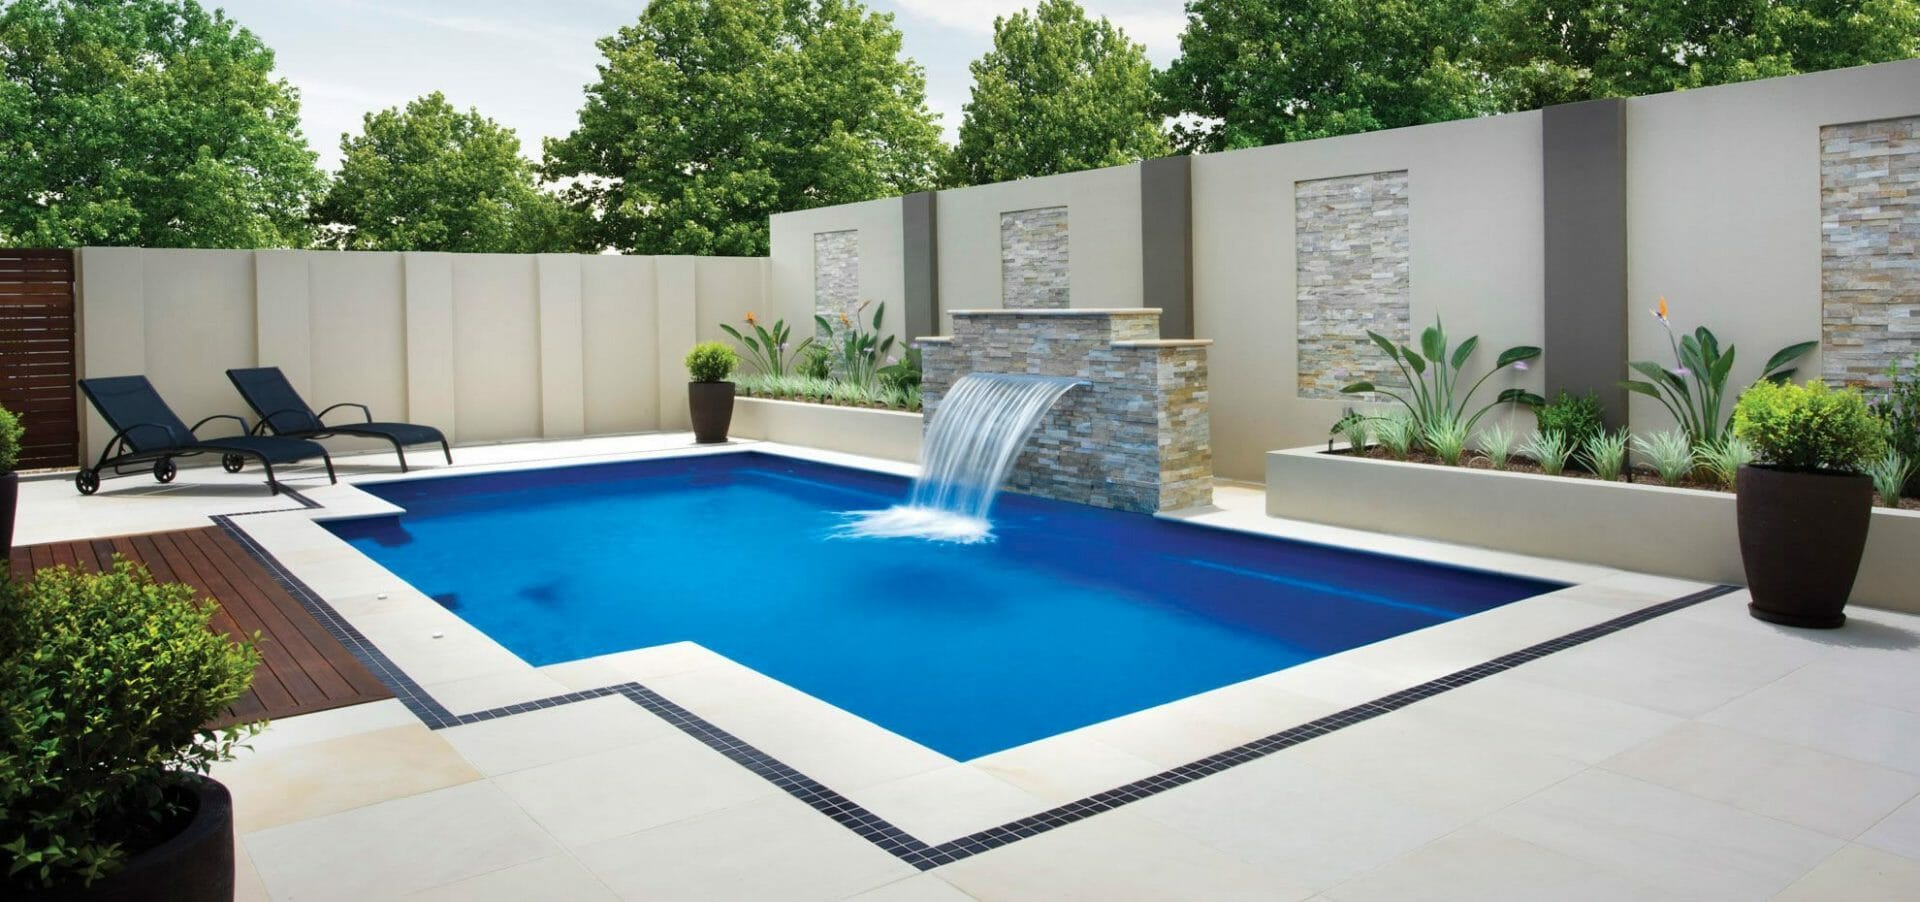 Modern Elegance fibreglass pool with water feature and coping by Leisure Pools